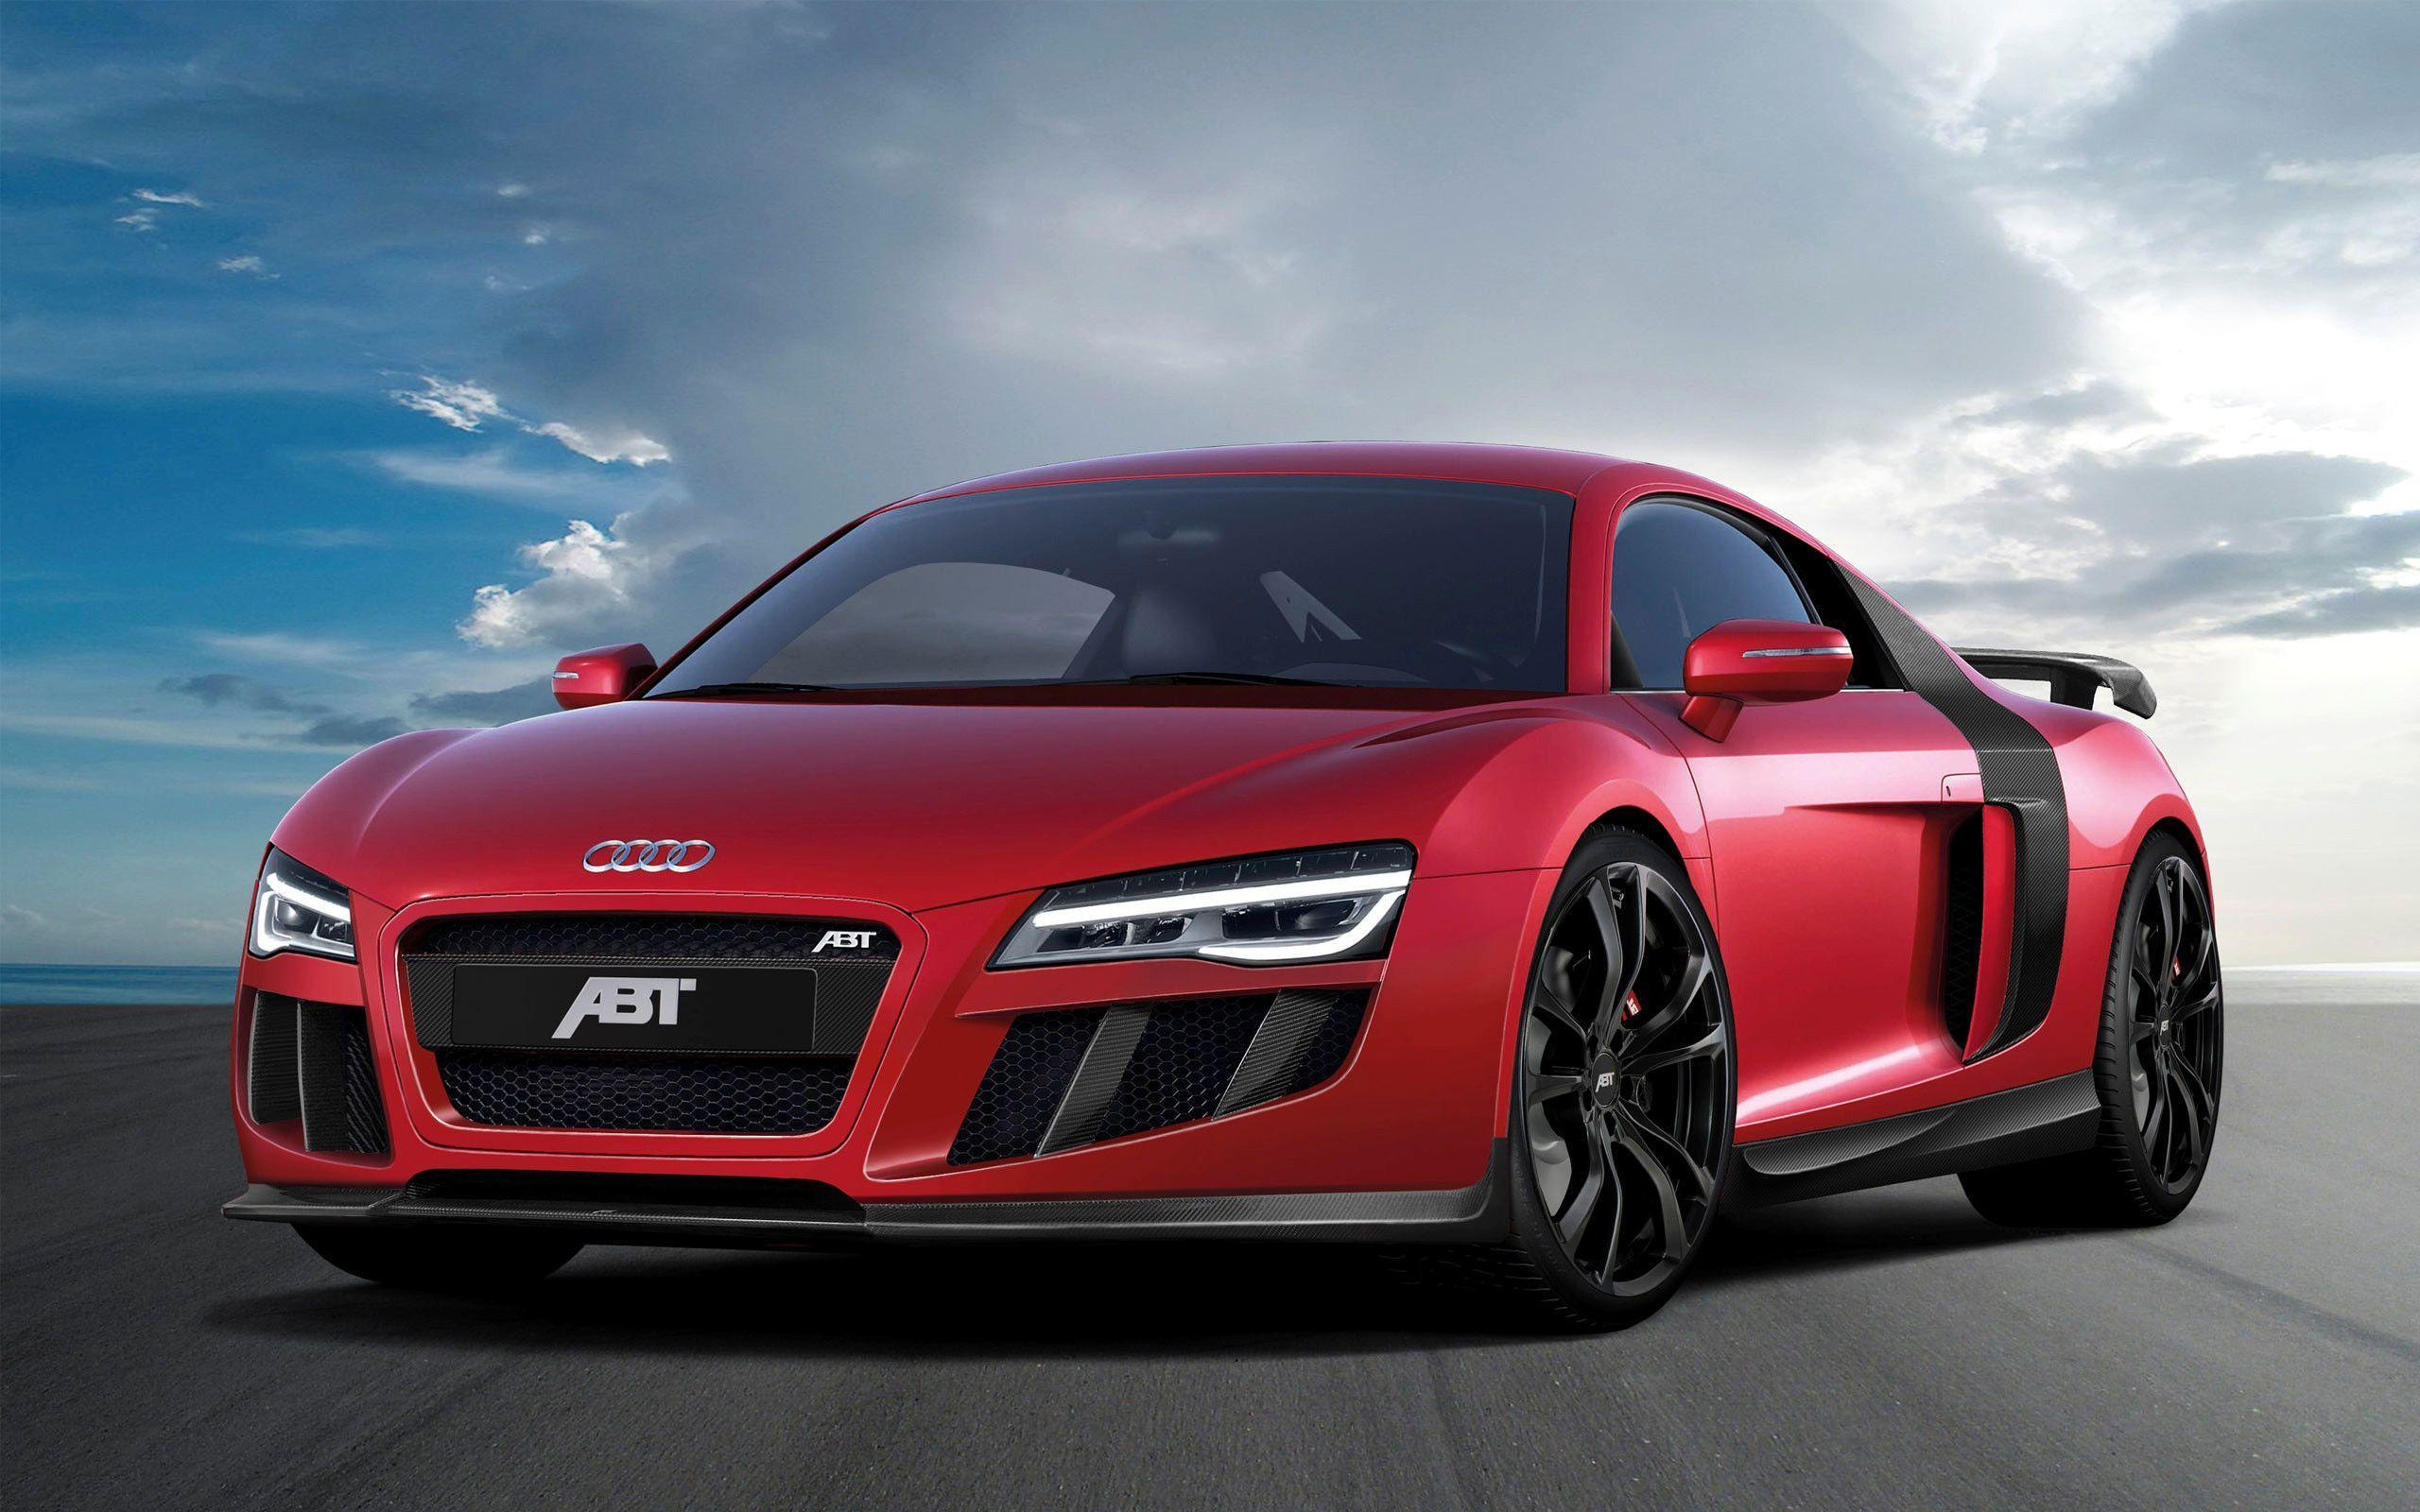 Audi R8 Wallpaper Backgrounds 4861 Full HD Wallpapers Desktop